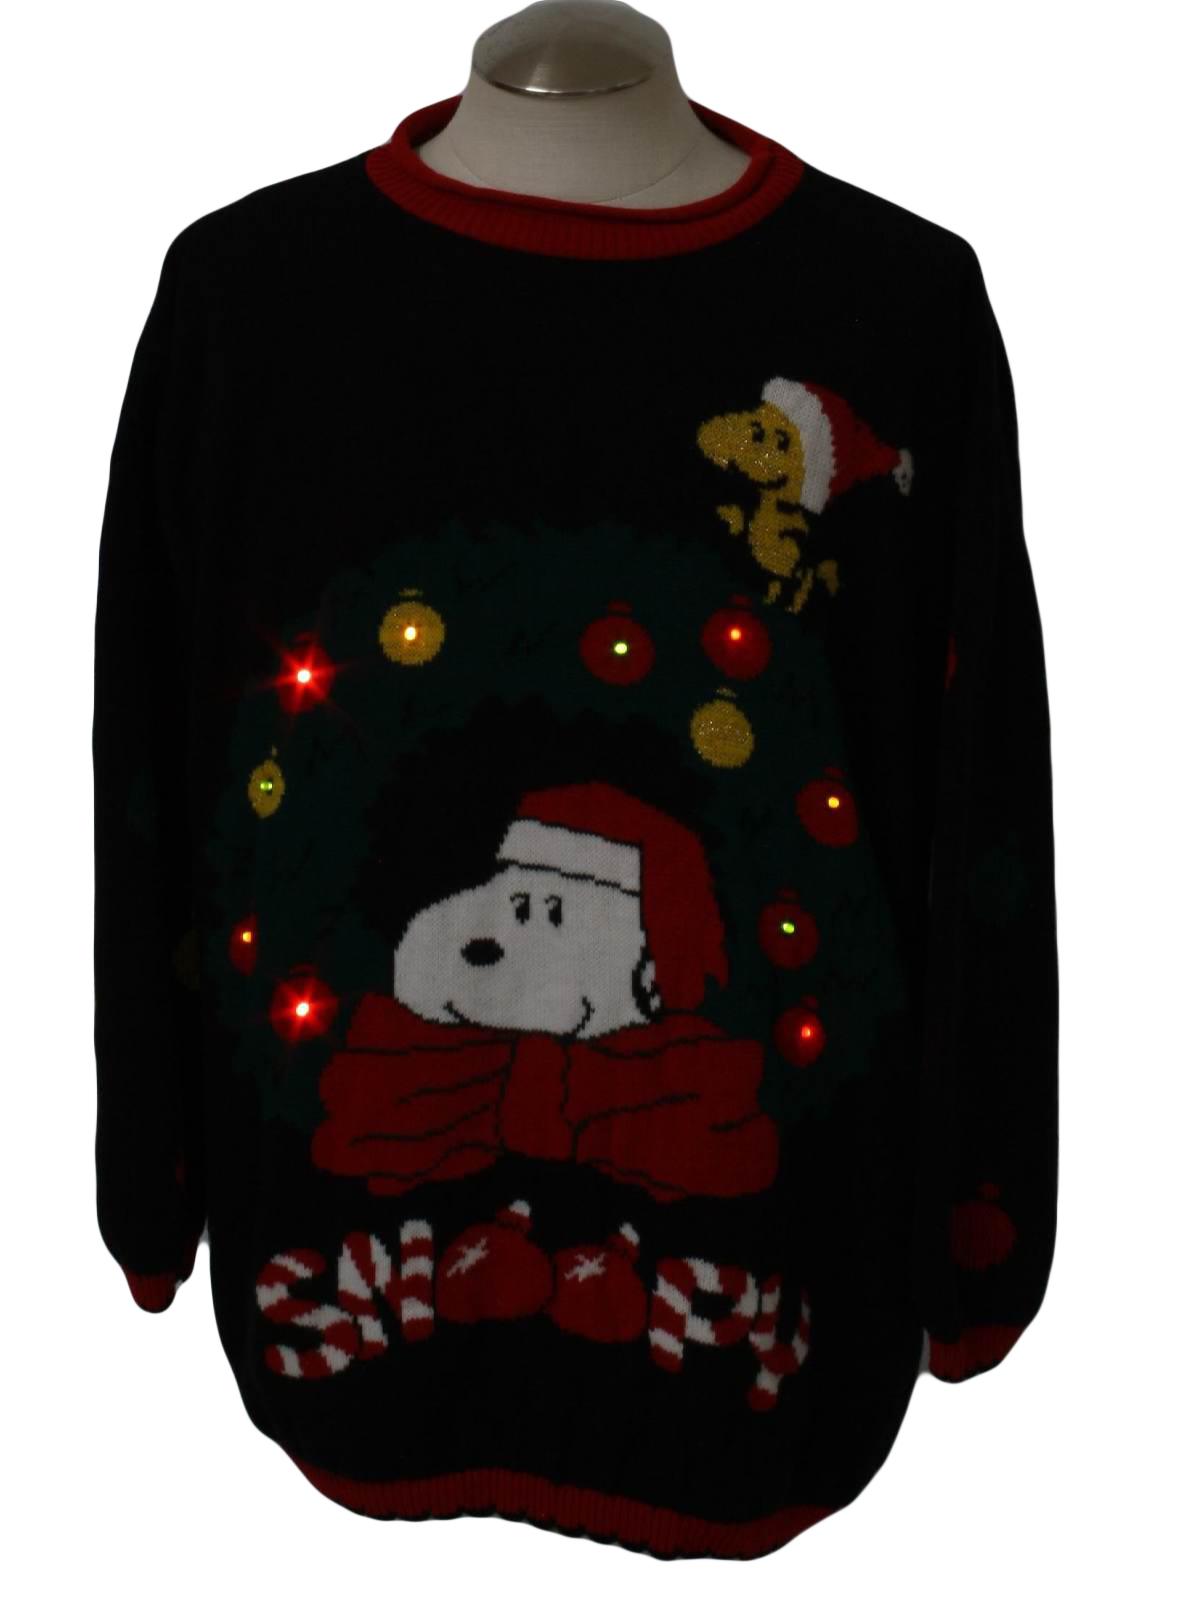 80s lightup snoopy ugly christmas sweater 80s authentic vintage made in the usa snoopy and friends unisex black background pullover acrylic light up